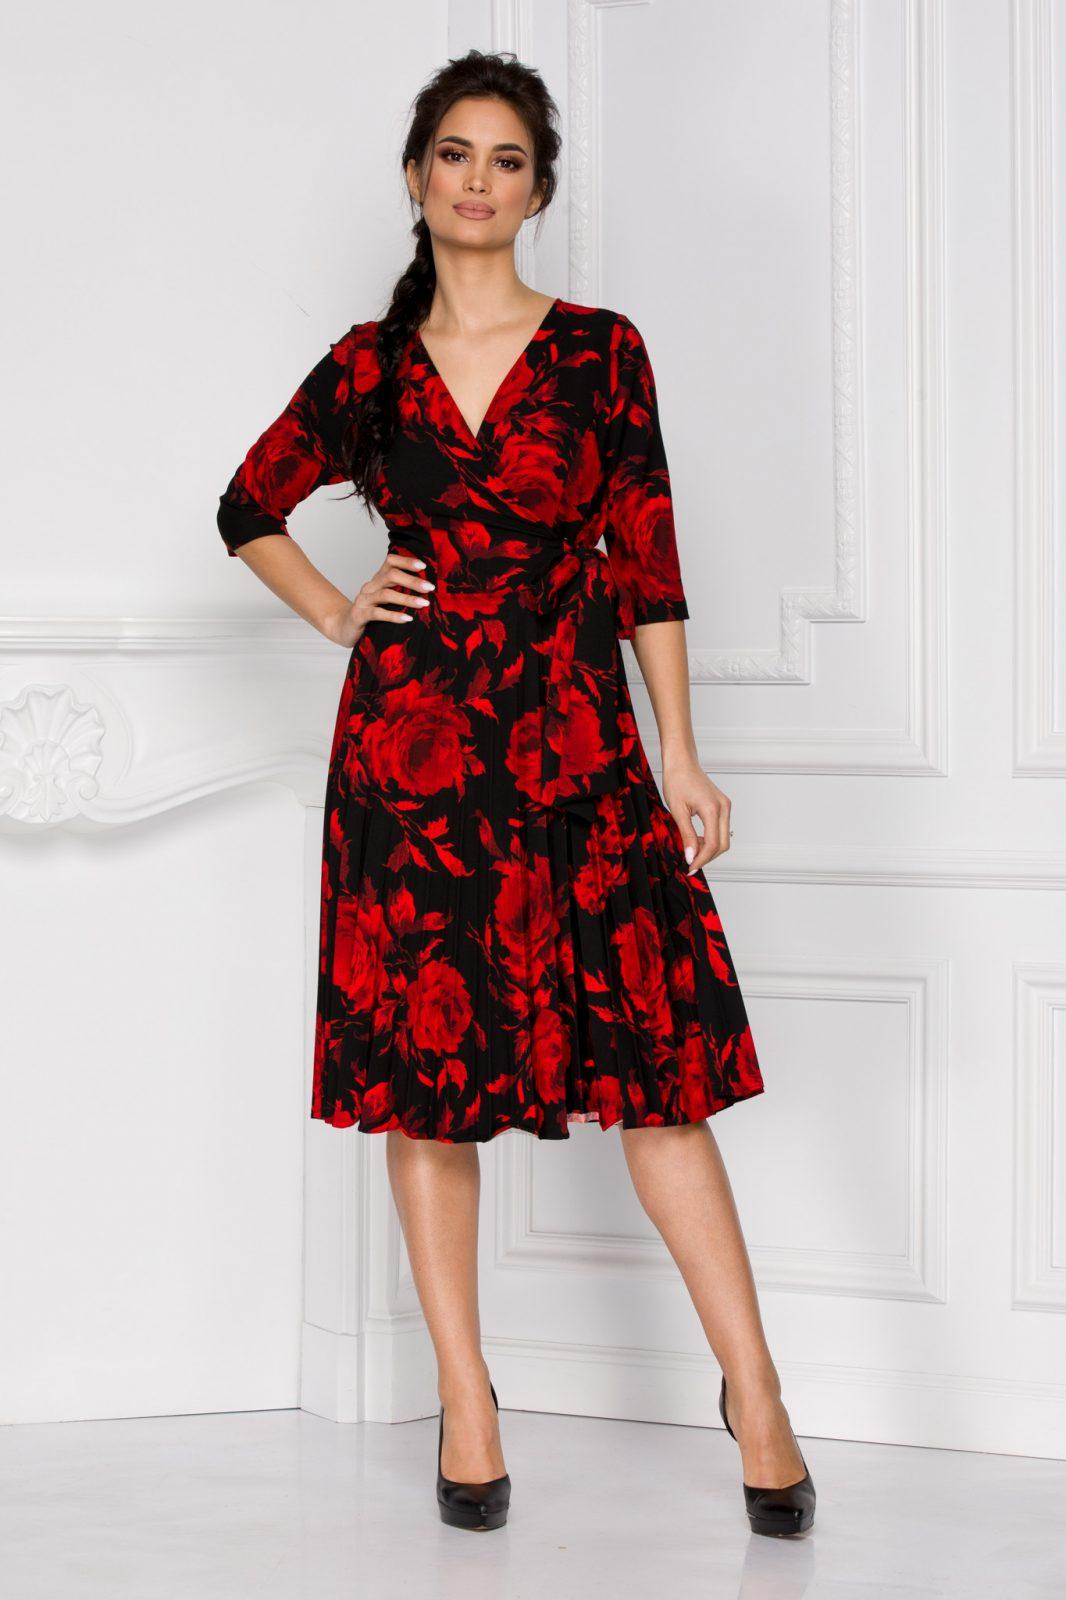 Floreal Red Dress